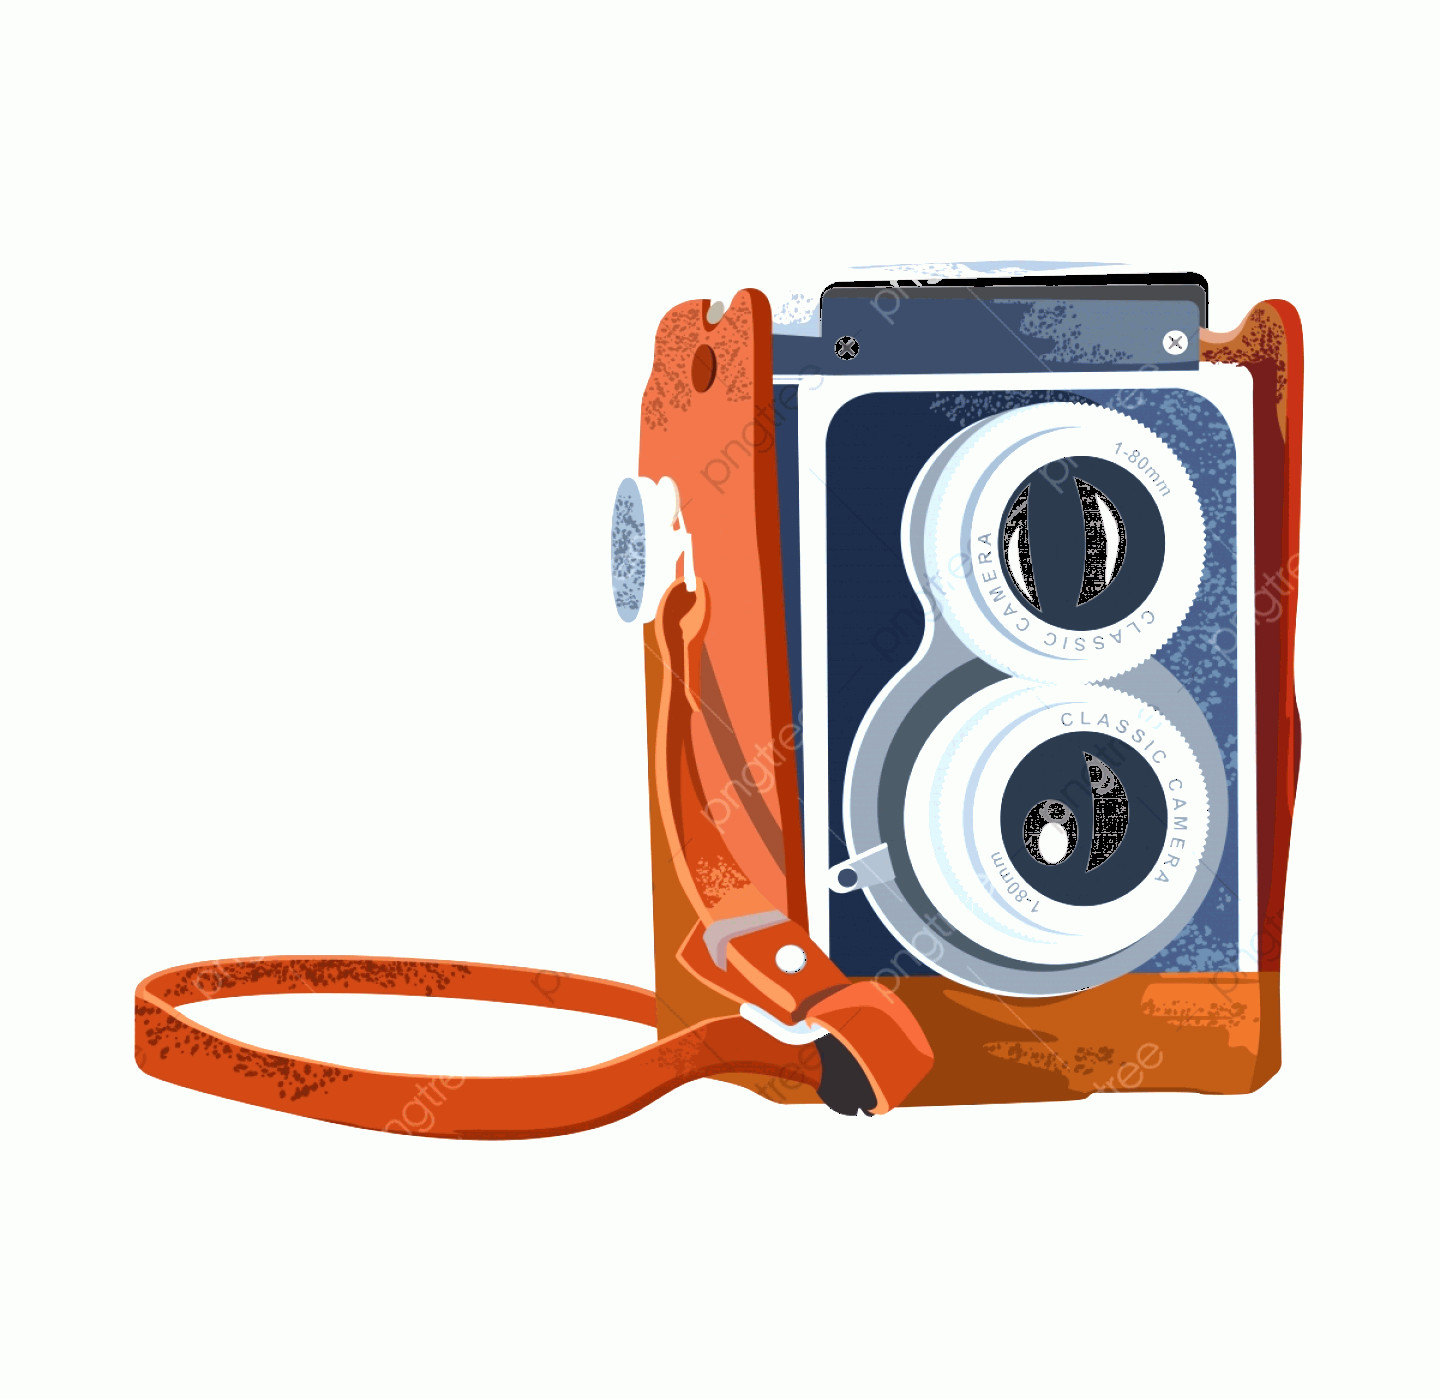 Classic Camera Vector: Illustration Of A Classic Camera With A Brown Casing Vector Illustration